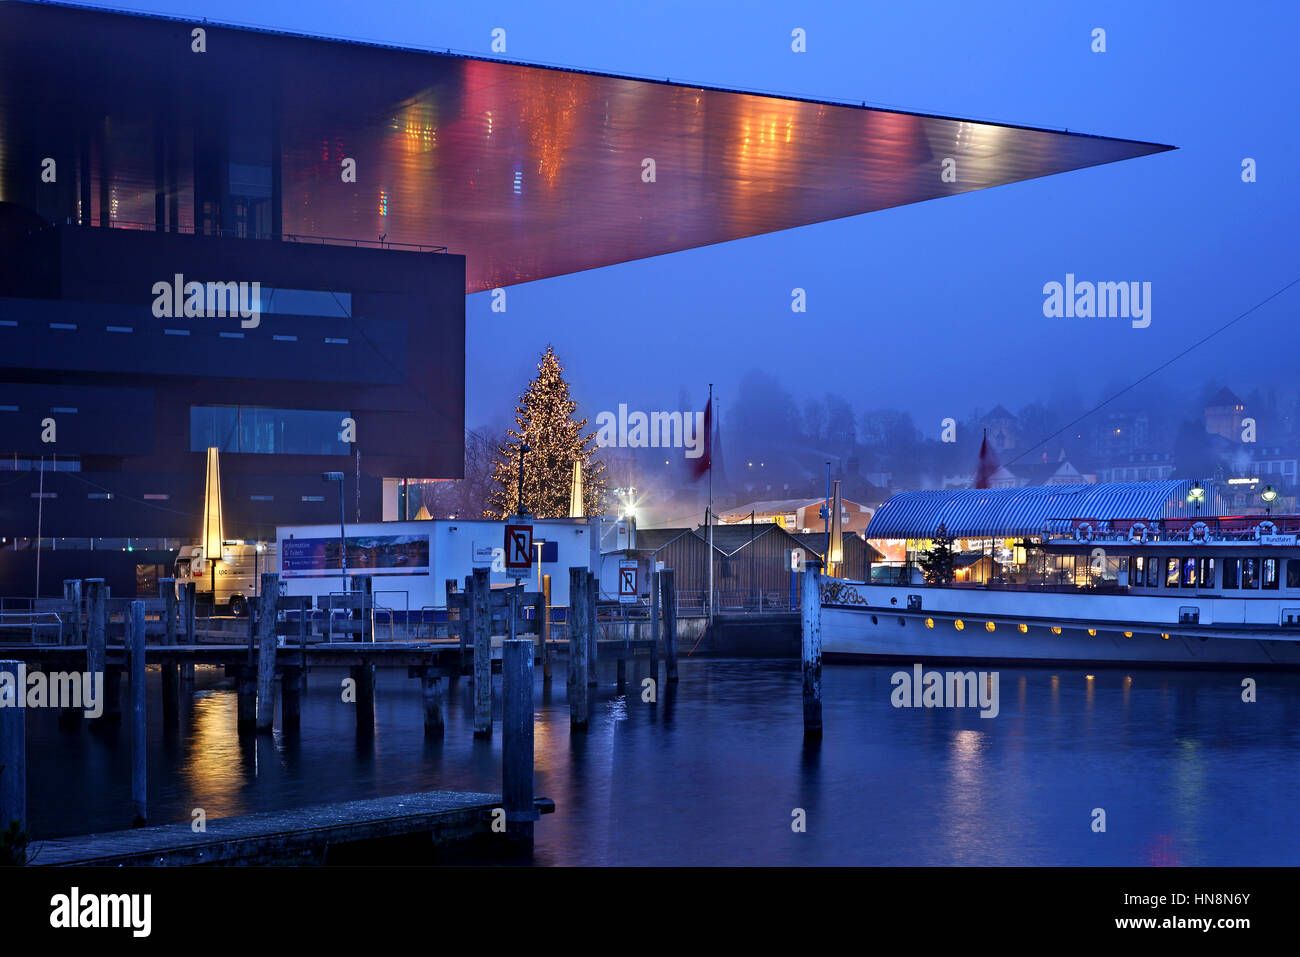 The KKL (Kultur- und Kongresszentrum Luzern - architect: Jean Nouvel), Lucerne, Switzerland. - Stock Image